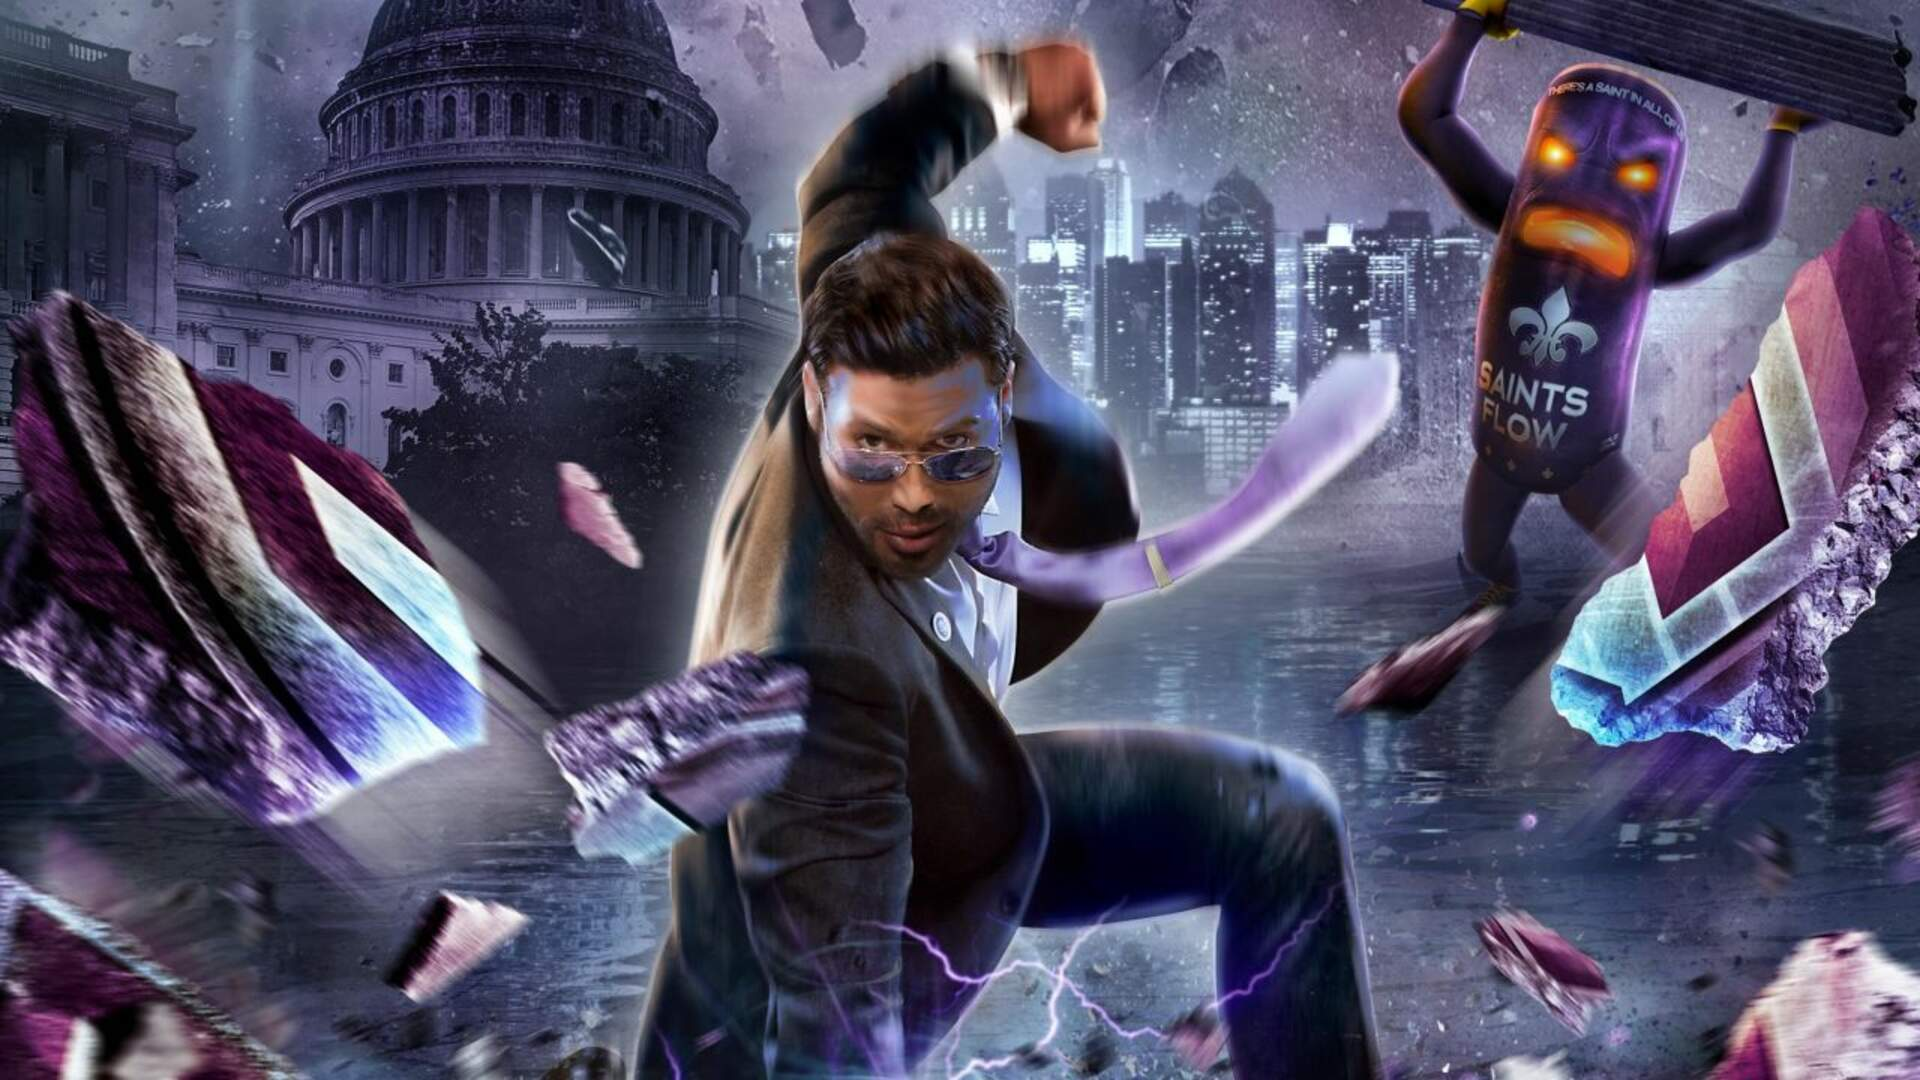 Saints Row 4 is Making Its Nintendo Switch Debut Next Month